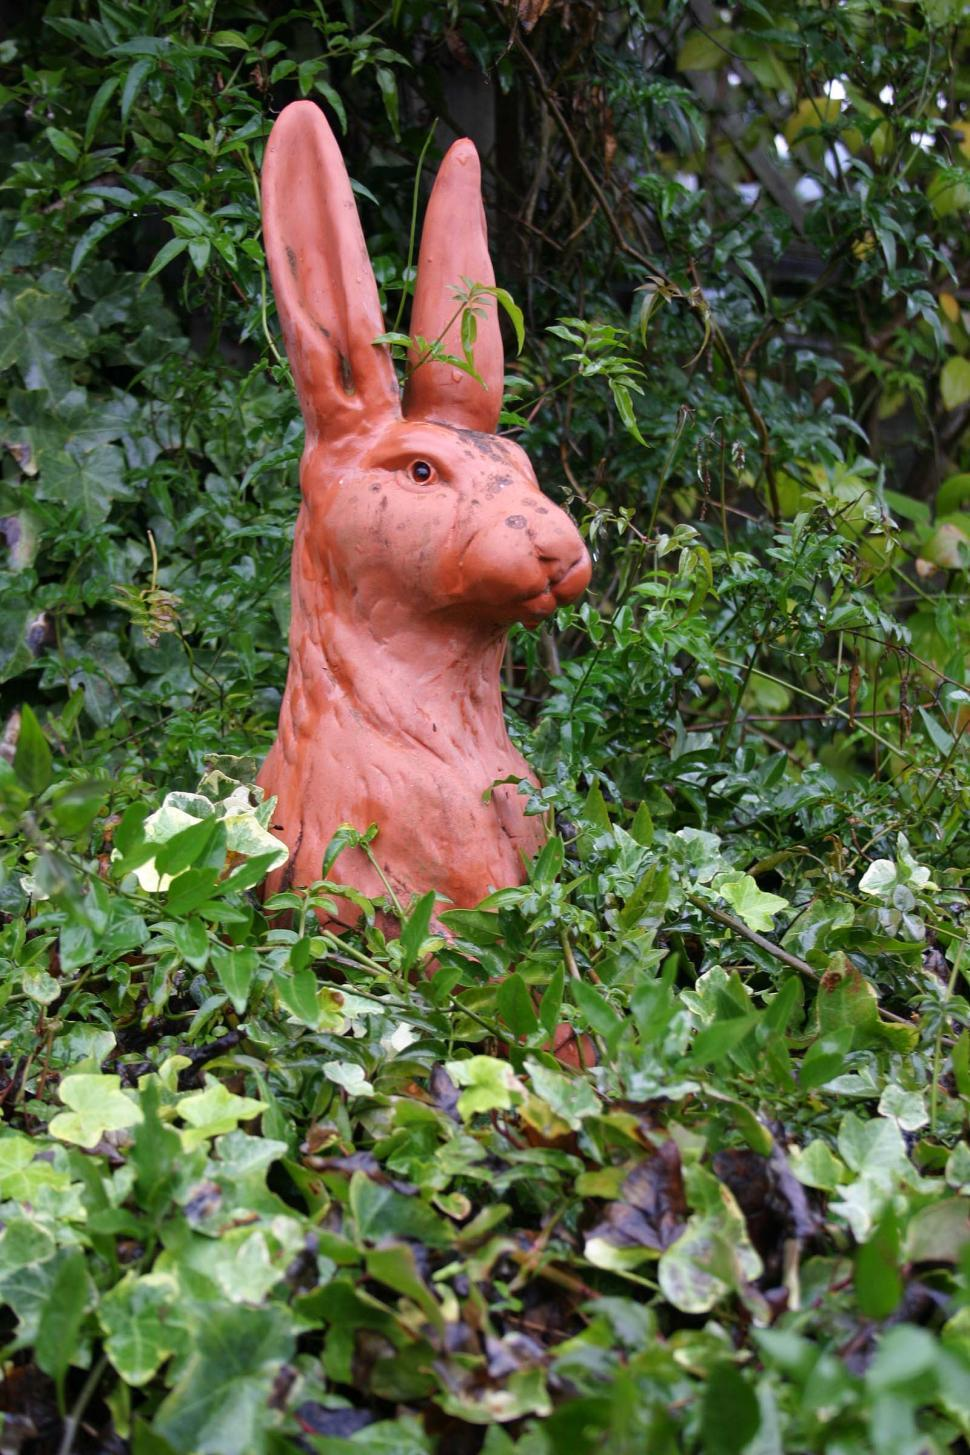 Download Free Stock Photo of garden rabbit sculpture statue ceramic clay whimsical plants animal